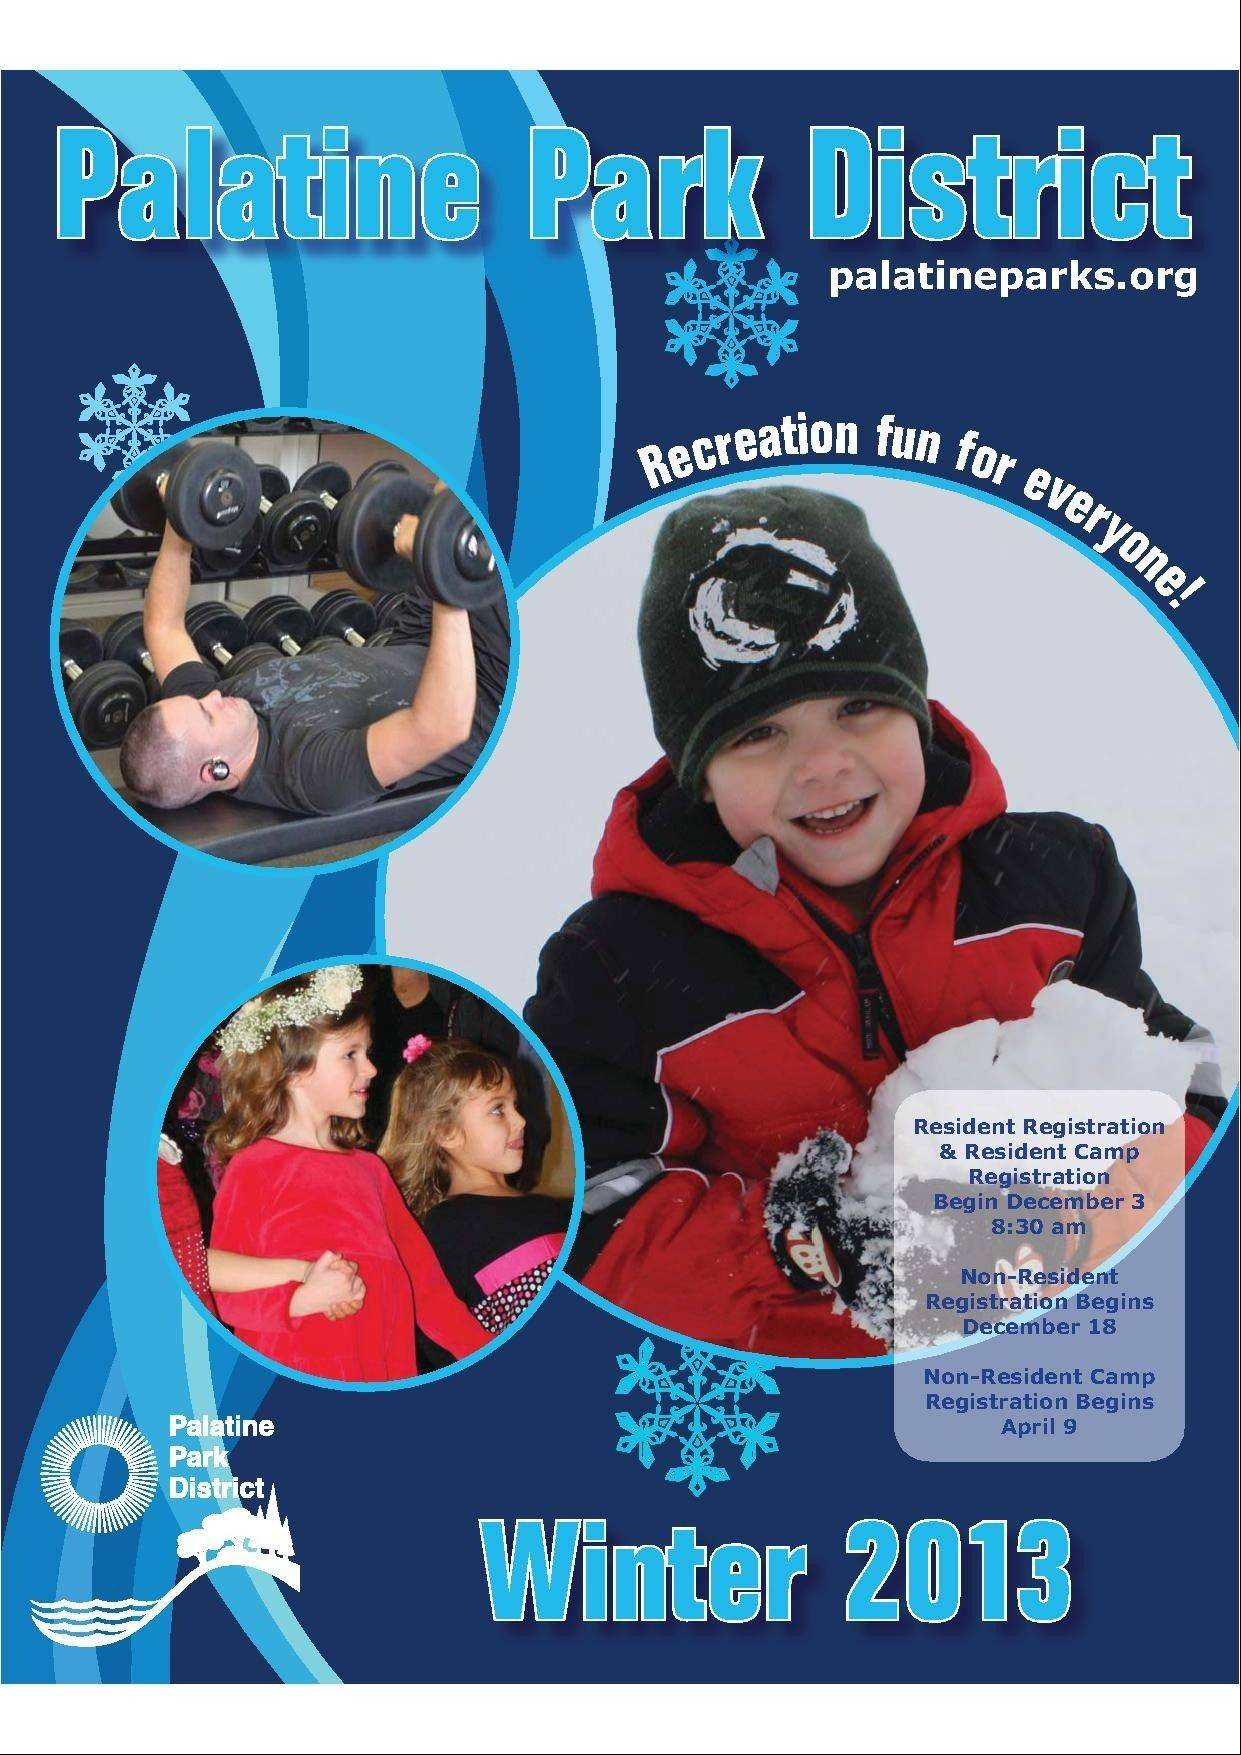 Residents of the Palatine Park District should be on the look out for the winter catalog in their mailboxes beginning Nov. 30. The catalog includes 76 pages of winter programs, activities and special events.